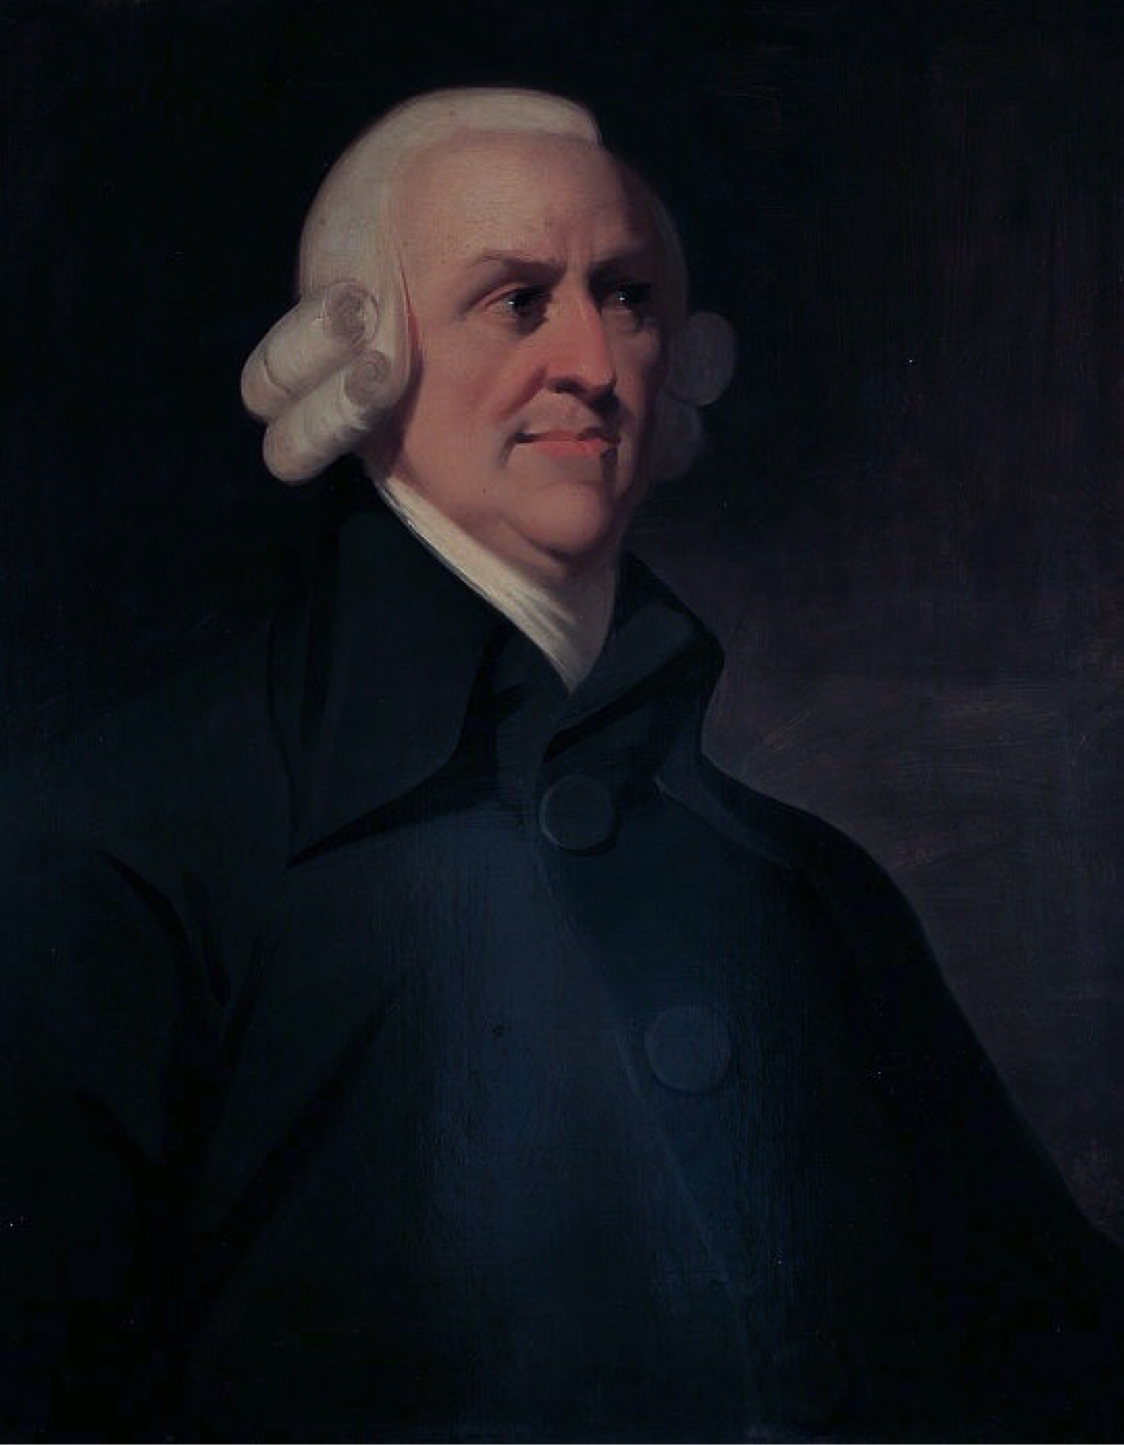 Morality. - Learn how Adam Smith teaches morality.